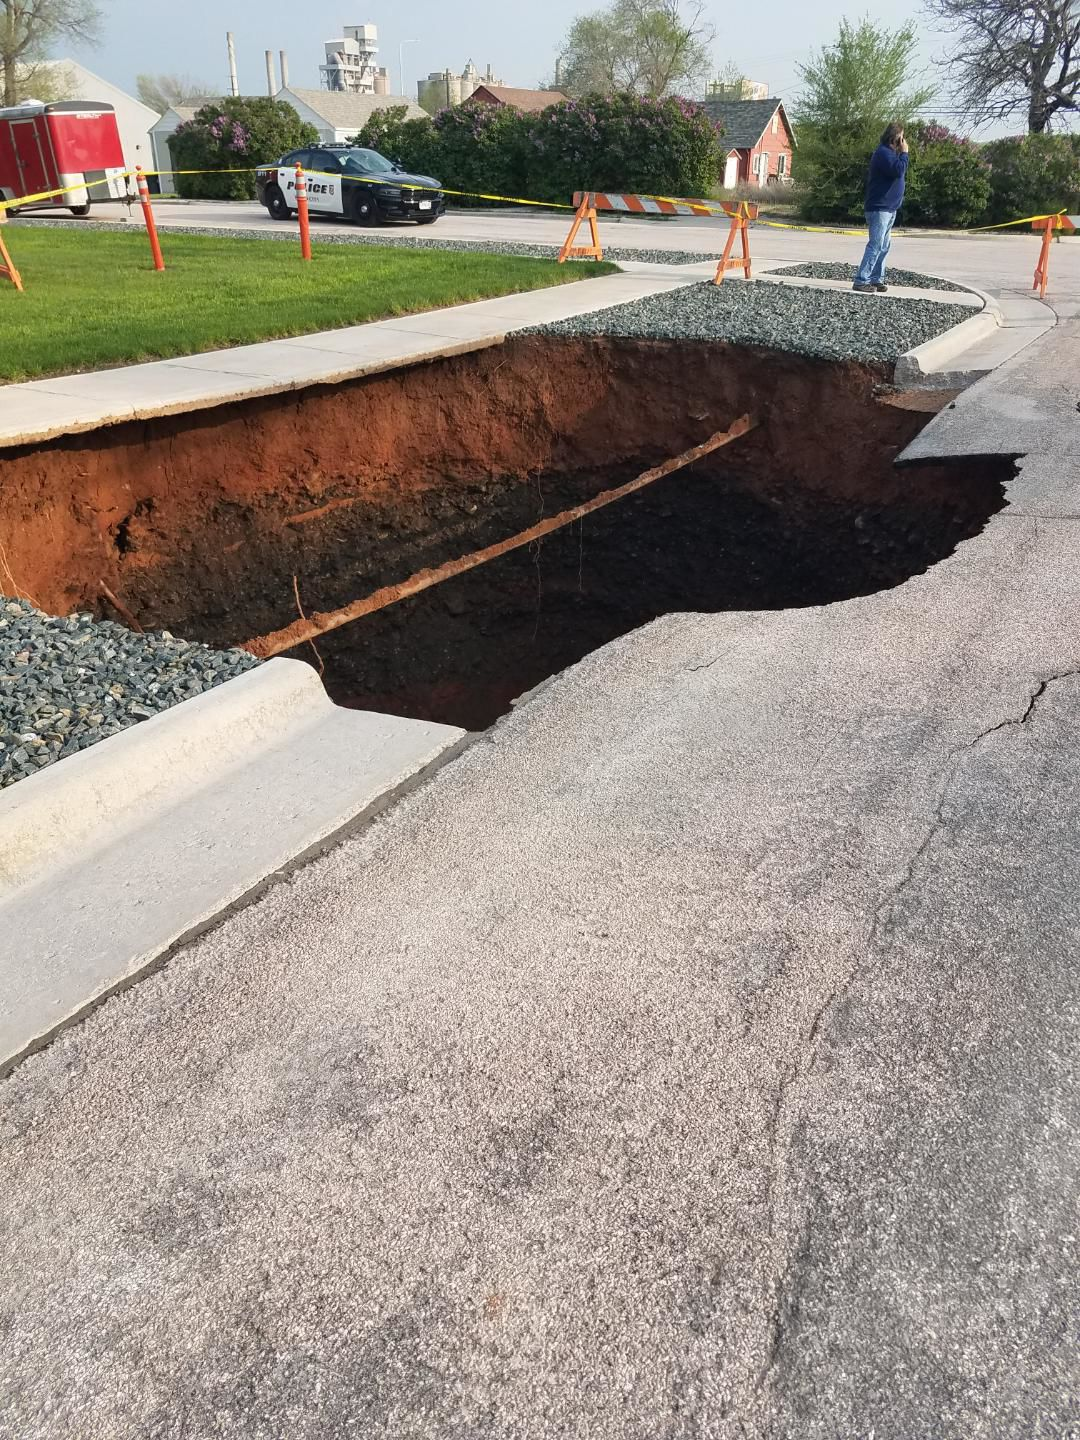 Sink hole opens in west end